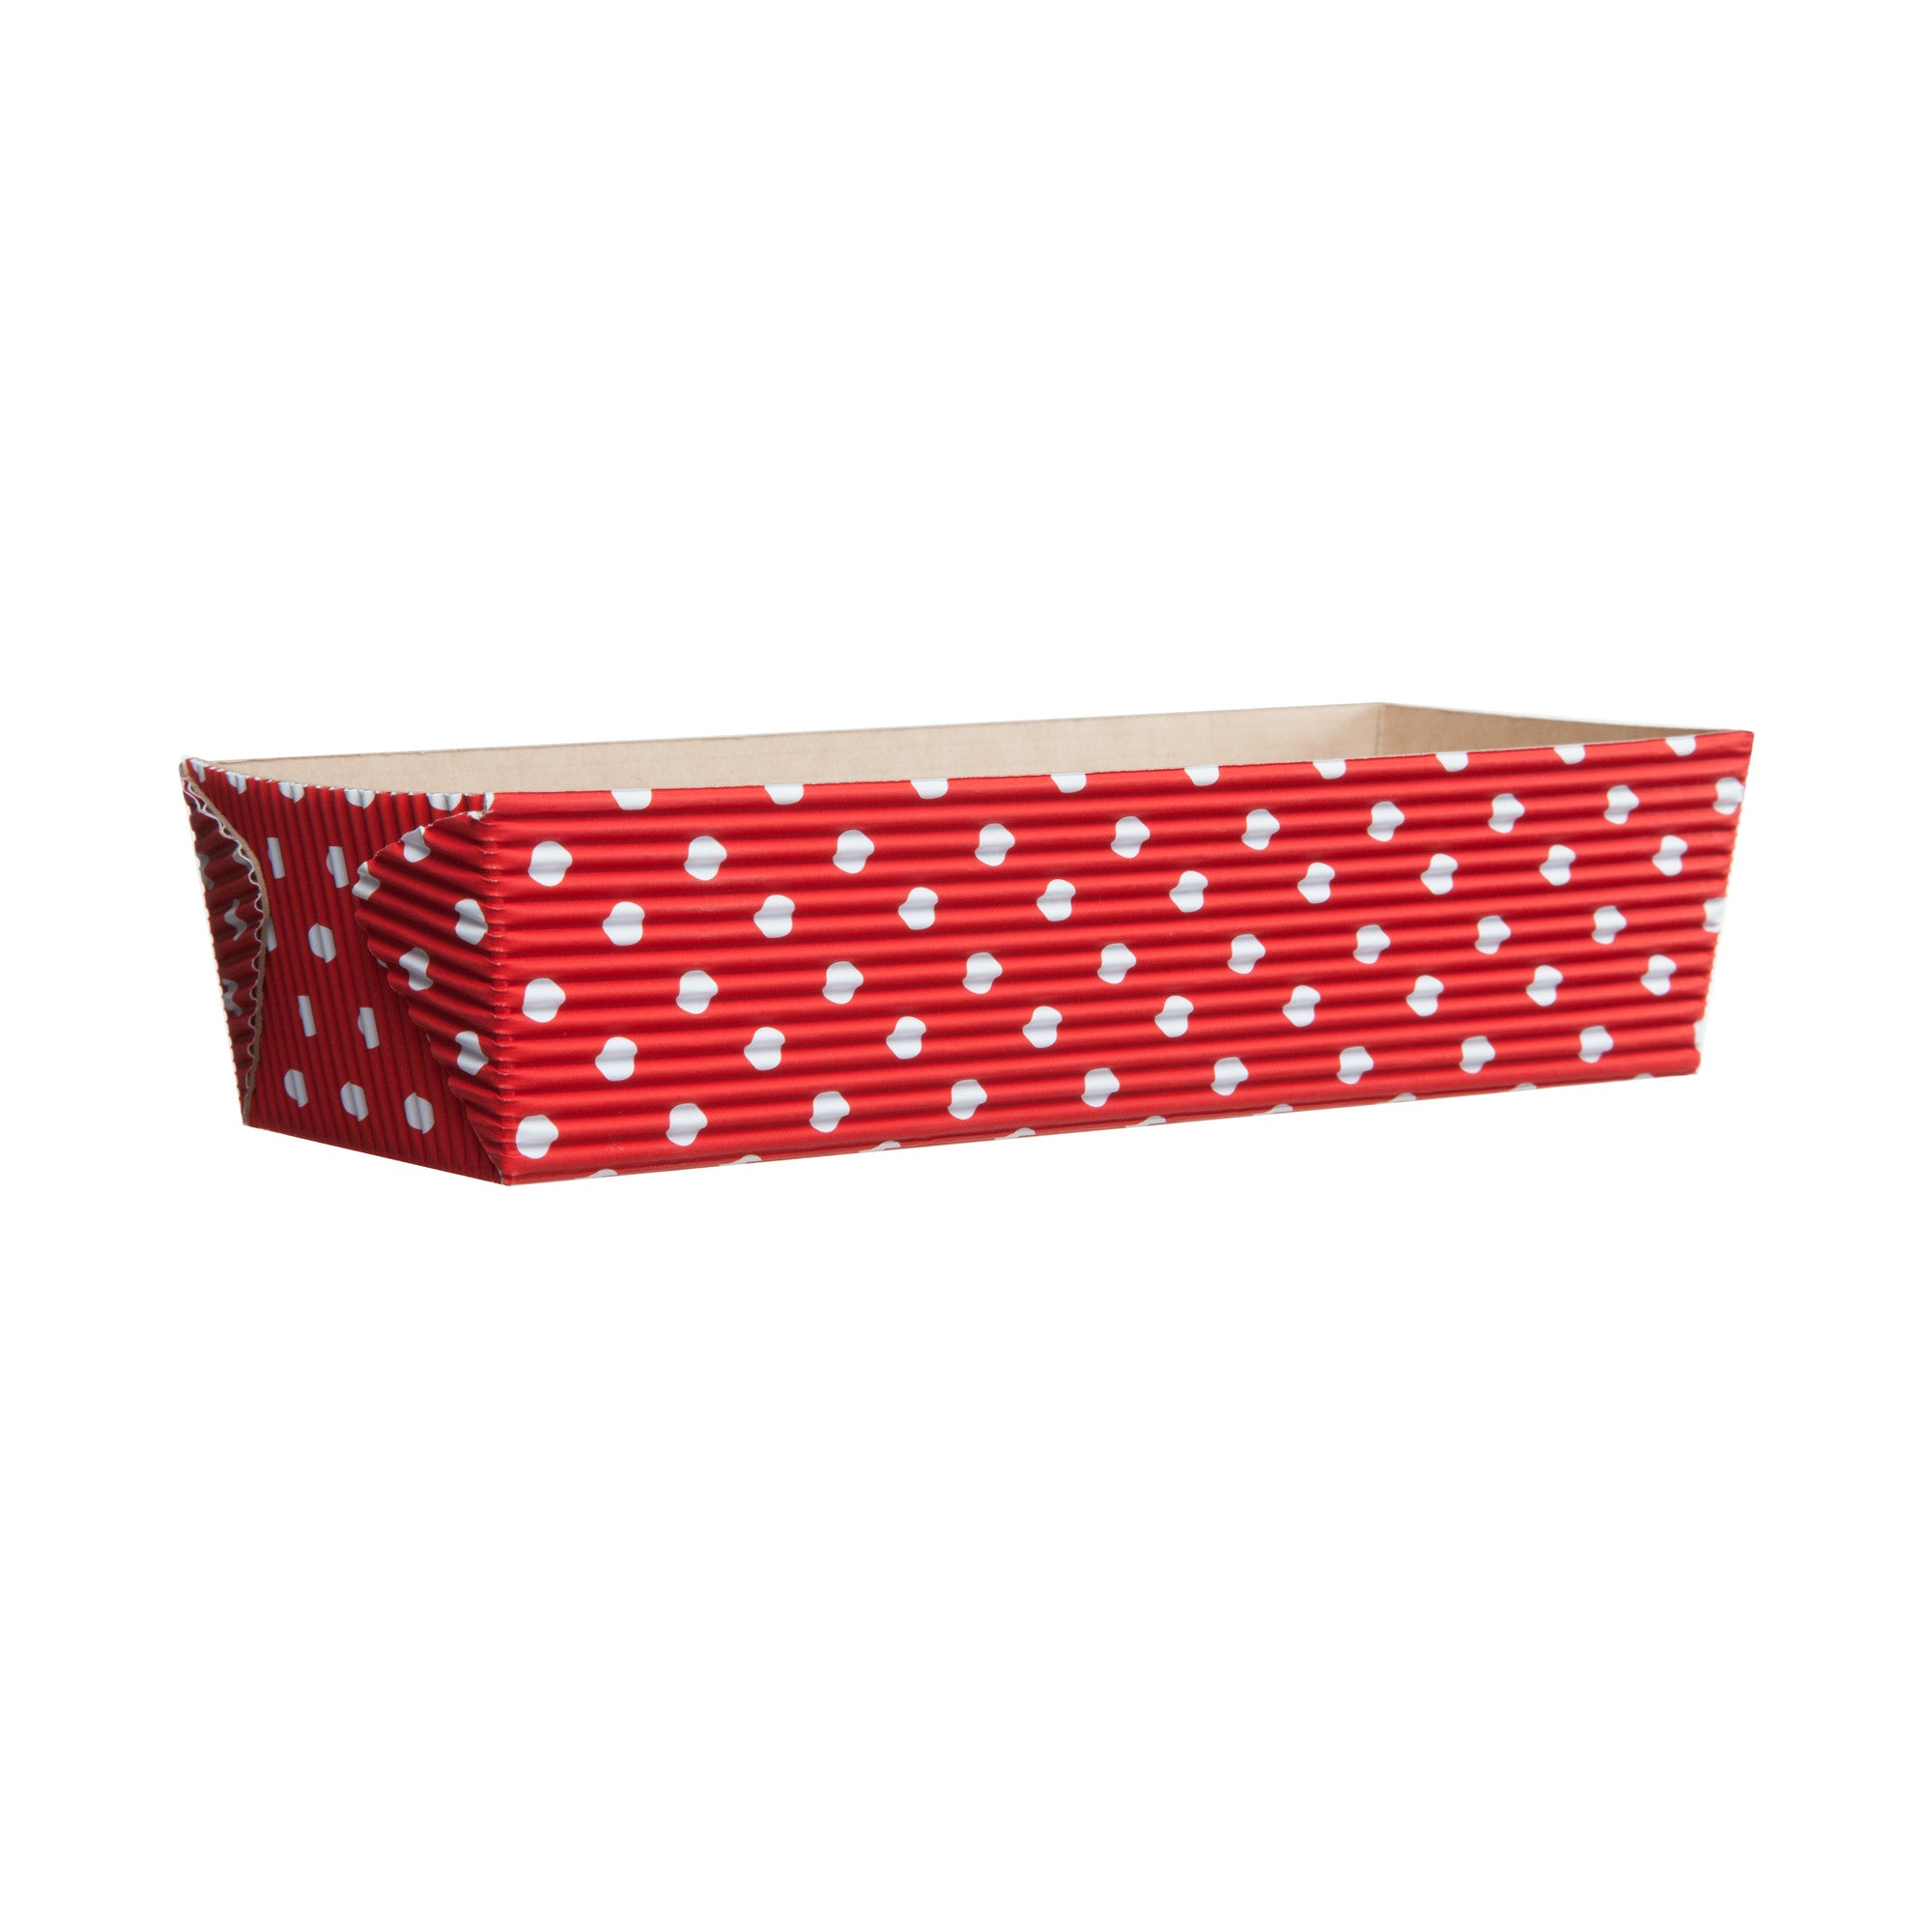 Rectangular Loaf Baking Pans, Red Dot - Paper Bake Shop